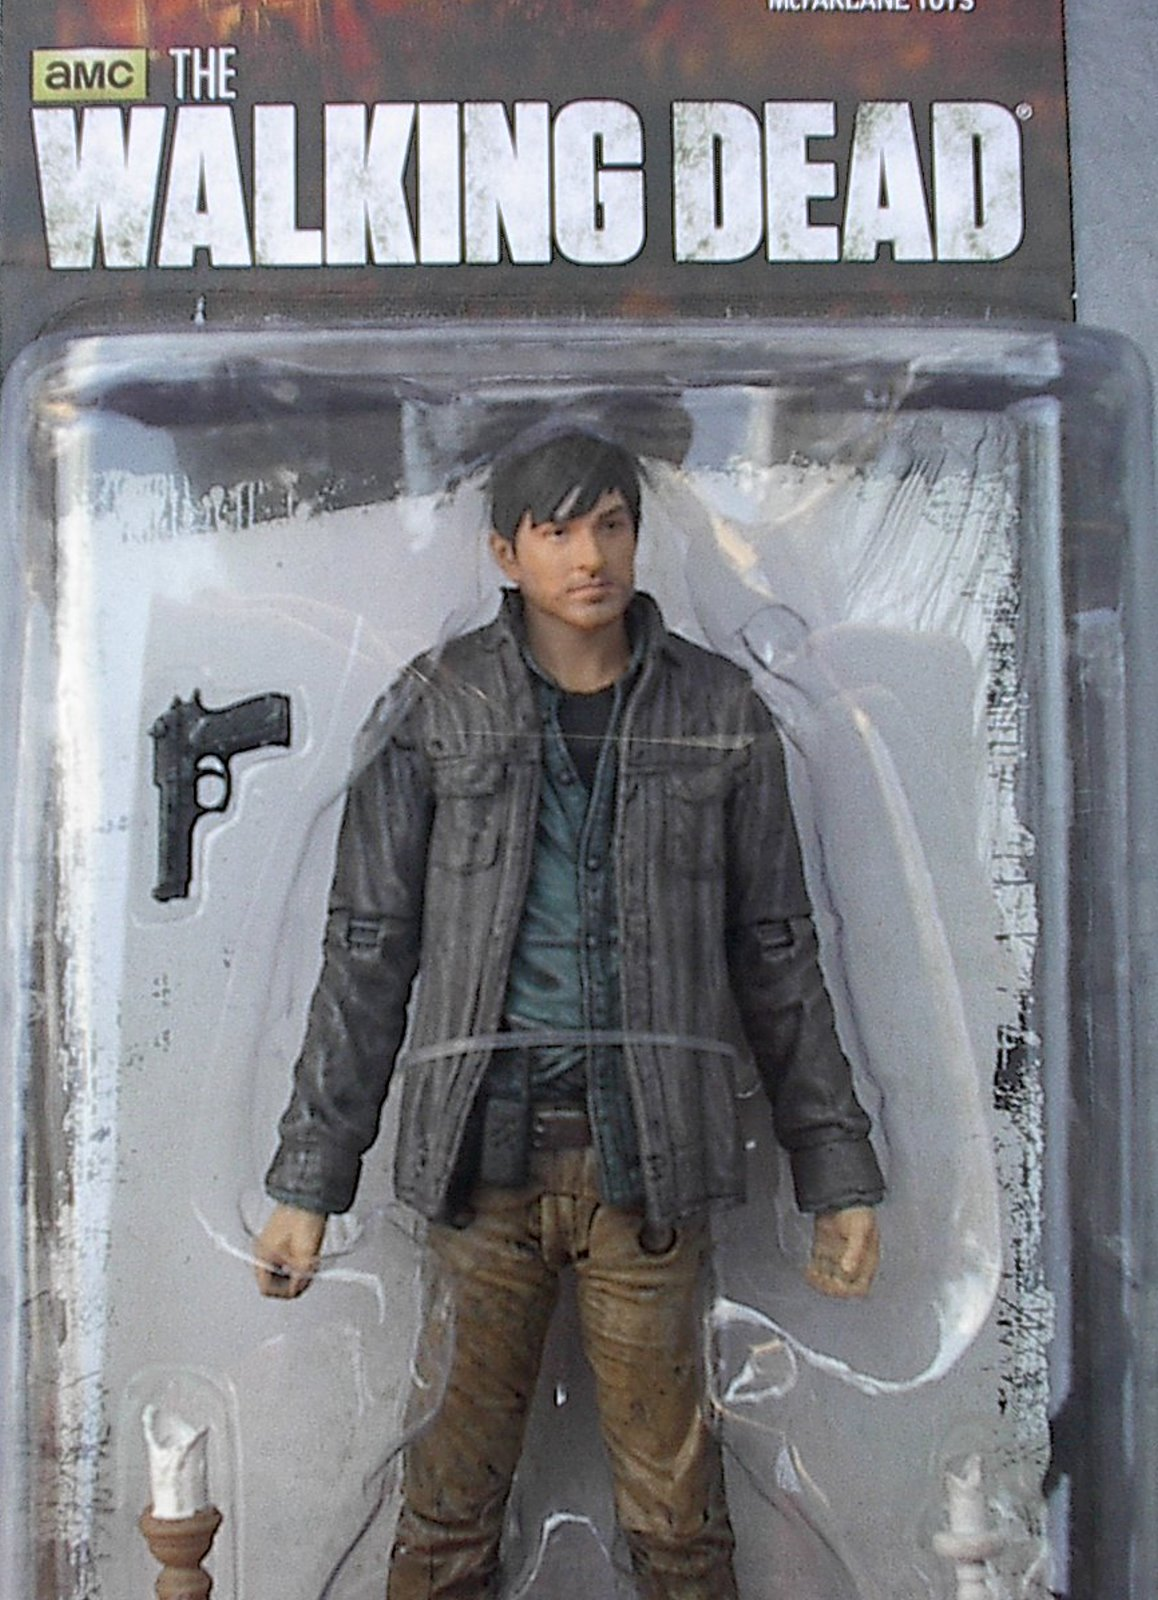 Gareth TV Series 7 The Walking Dead McFarlane figure